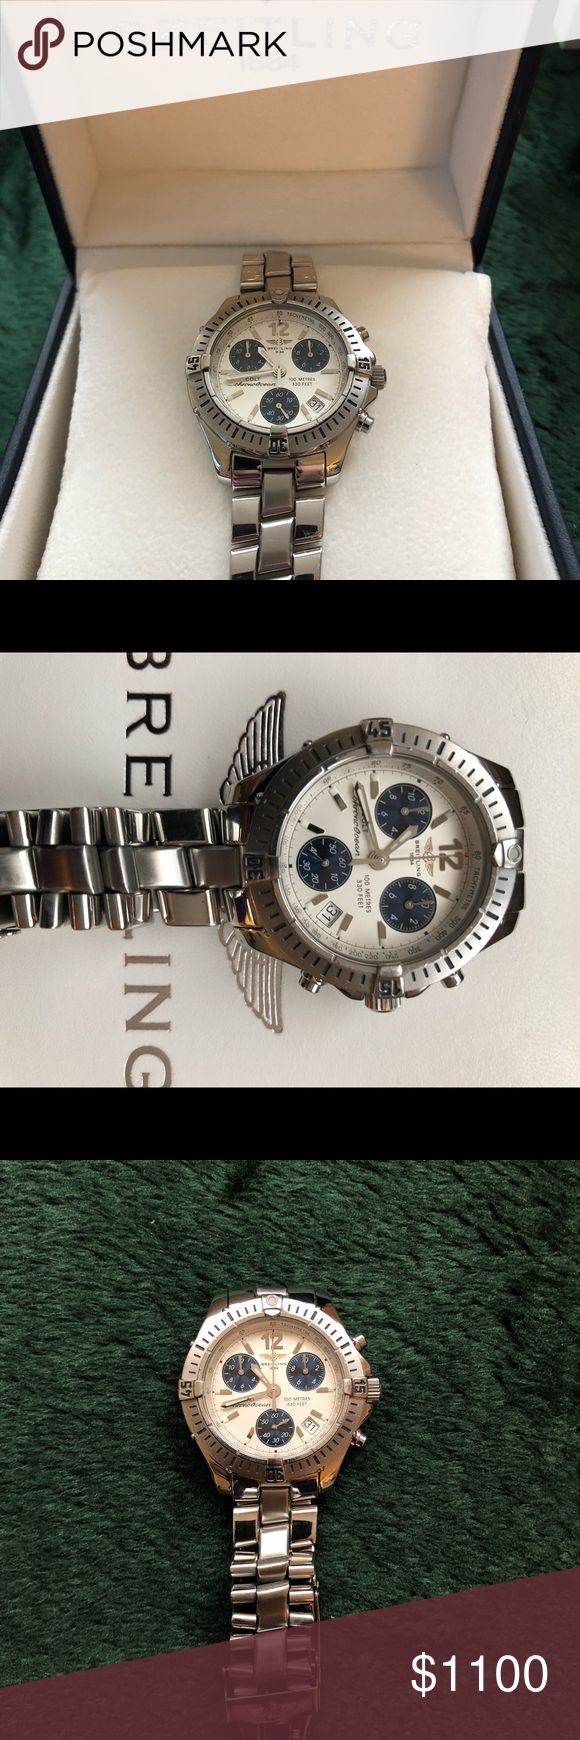 Men's Breitling Colt ChronoOcean Men's mid size Breitling Colt ChronoOcean Original box, travel case, all links. Works perfect. Recently serviced. Crystal is perfect. Minor scratches on band from light use. Please, no low ball offers. This is a high end watch at a great price. Breitling Accessories Watches